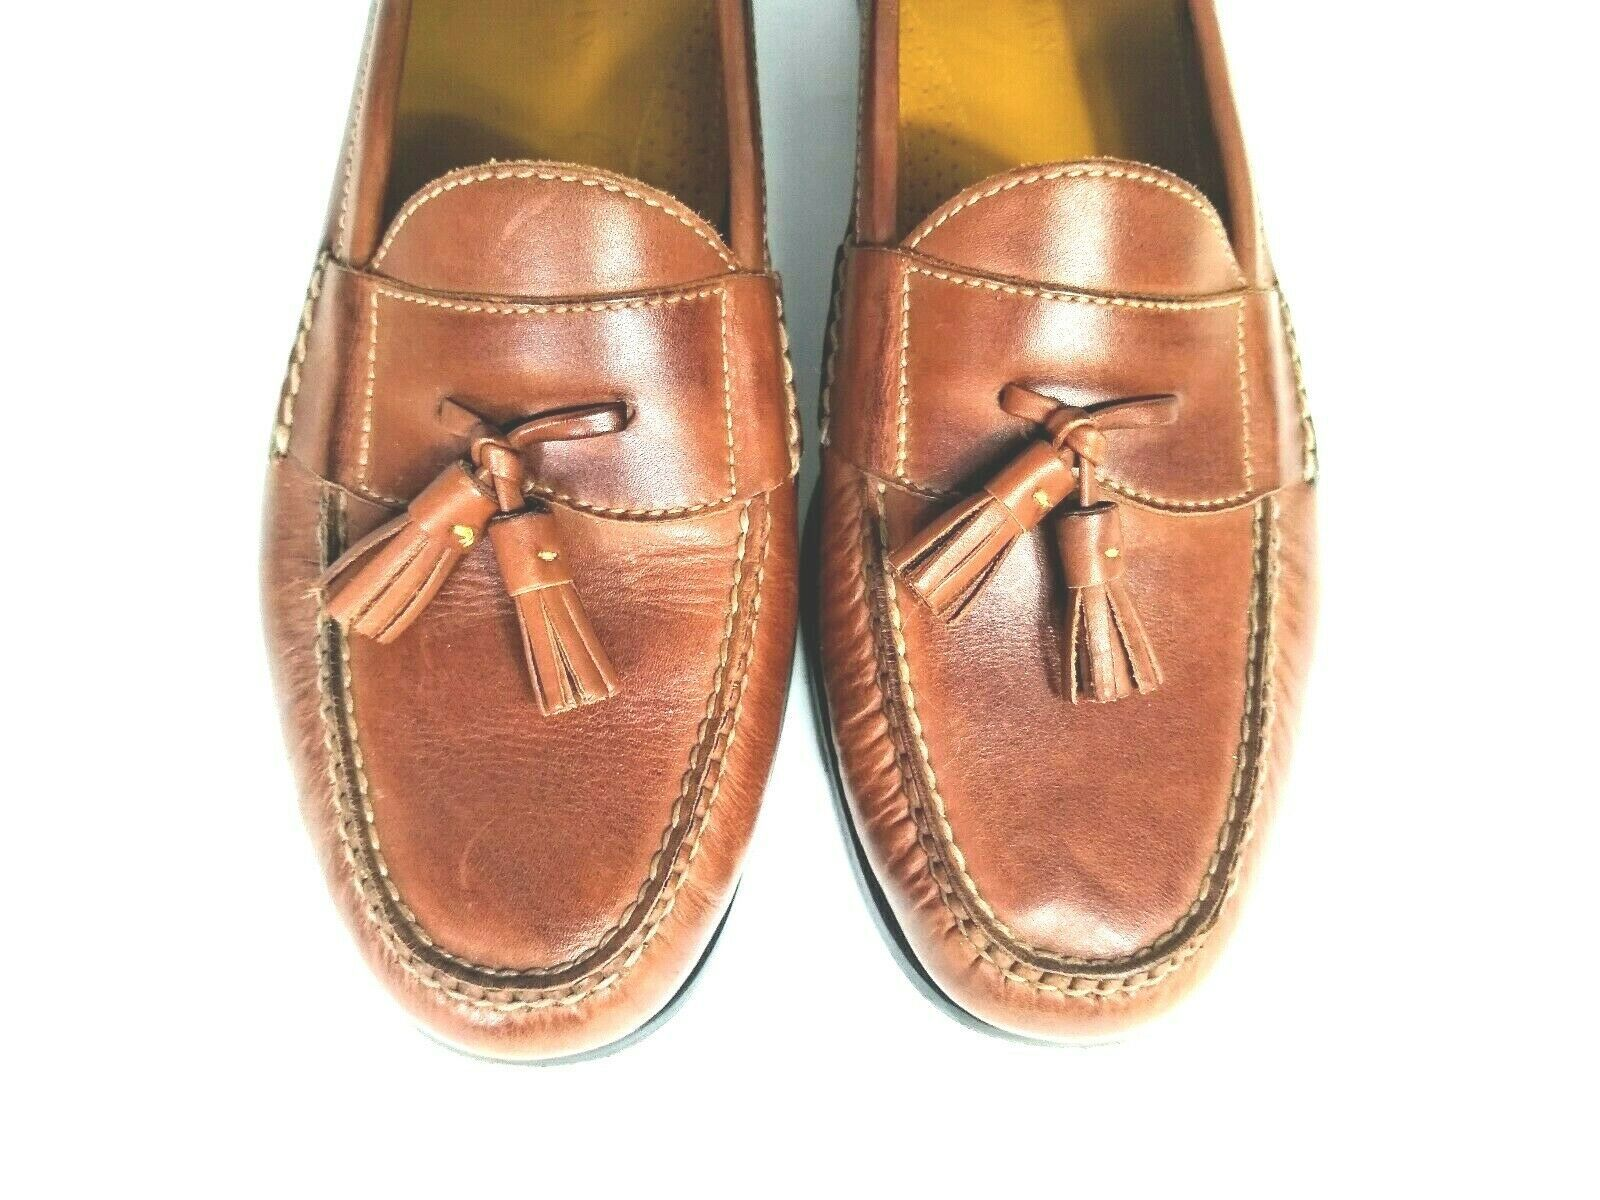 Cole Haan Men's Brown Leather Slip On Dress Pinch Tassel Loafer Sze 12 Air Sole  image 8